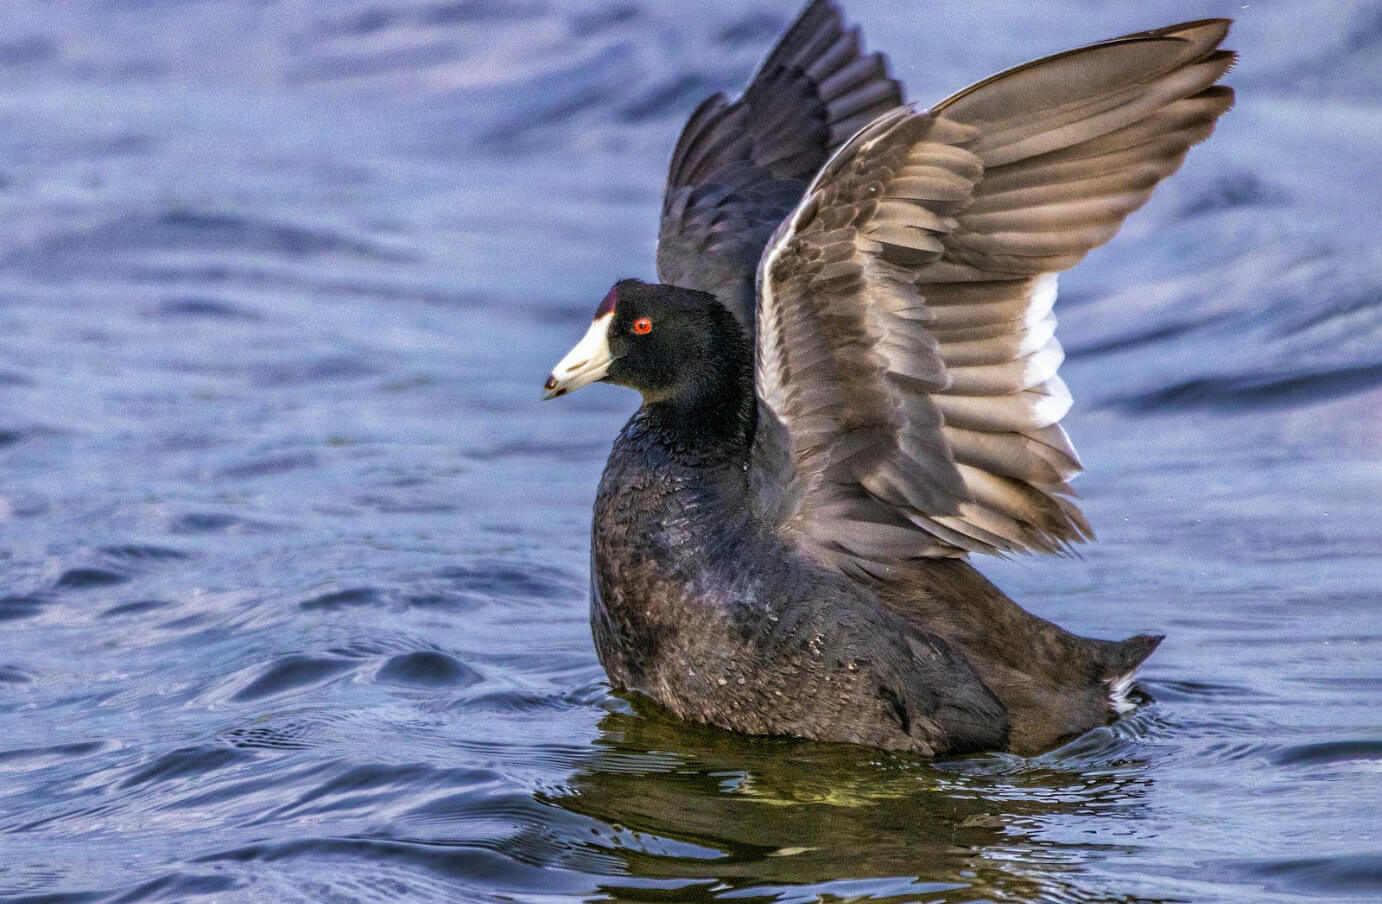 Picture of a single American Coot in a body of water with its wings extended, preparing to take flight